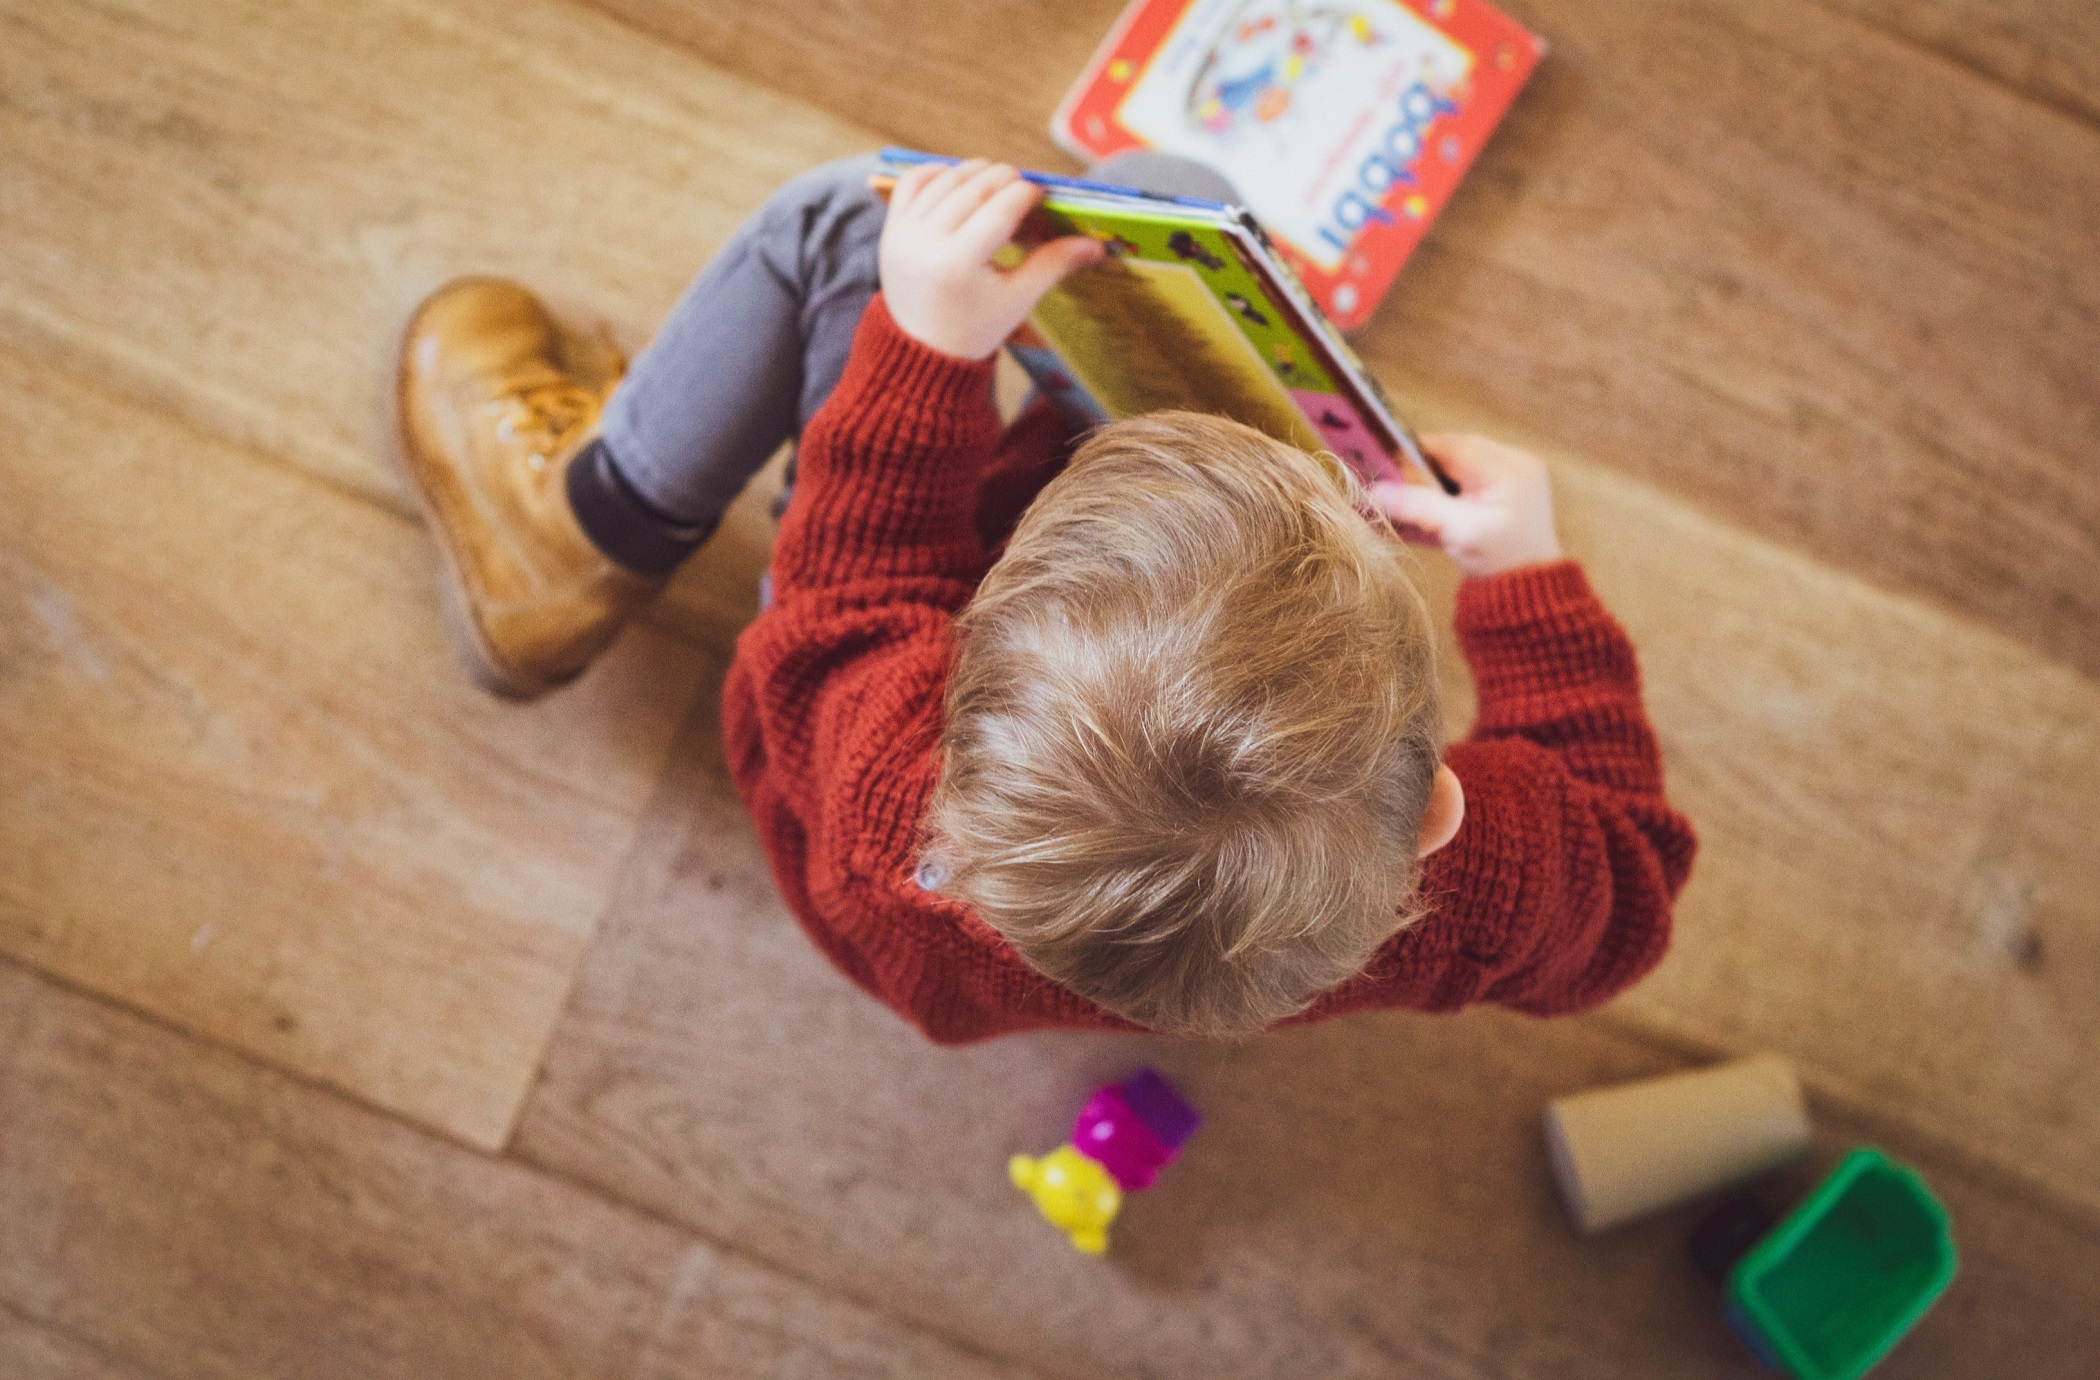 Bespoke and Up-to-date Training for Early Years Practitioners